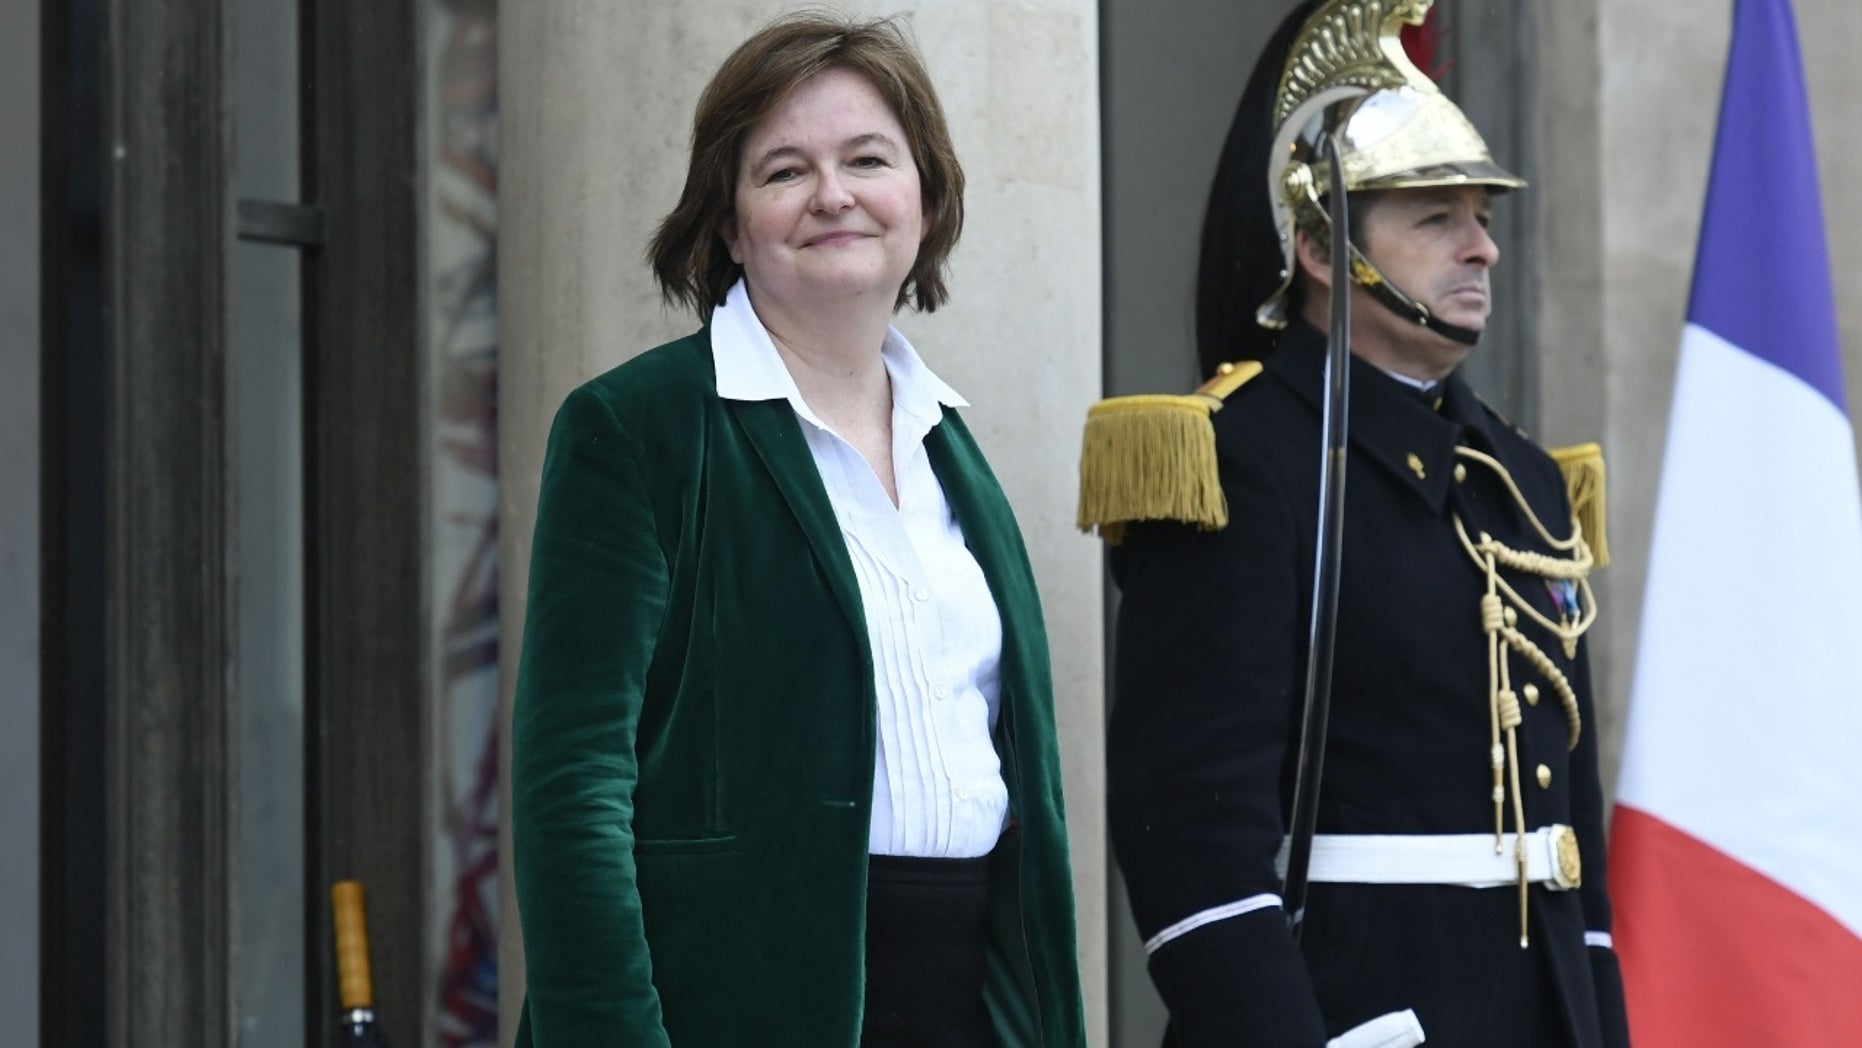 French minister named her cat Brexit because he's indecisive, report says